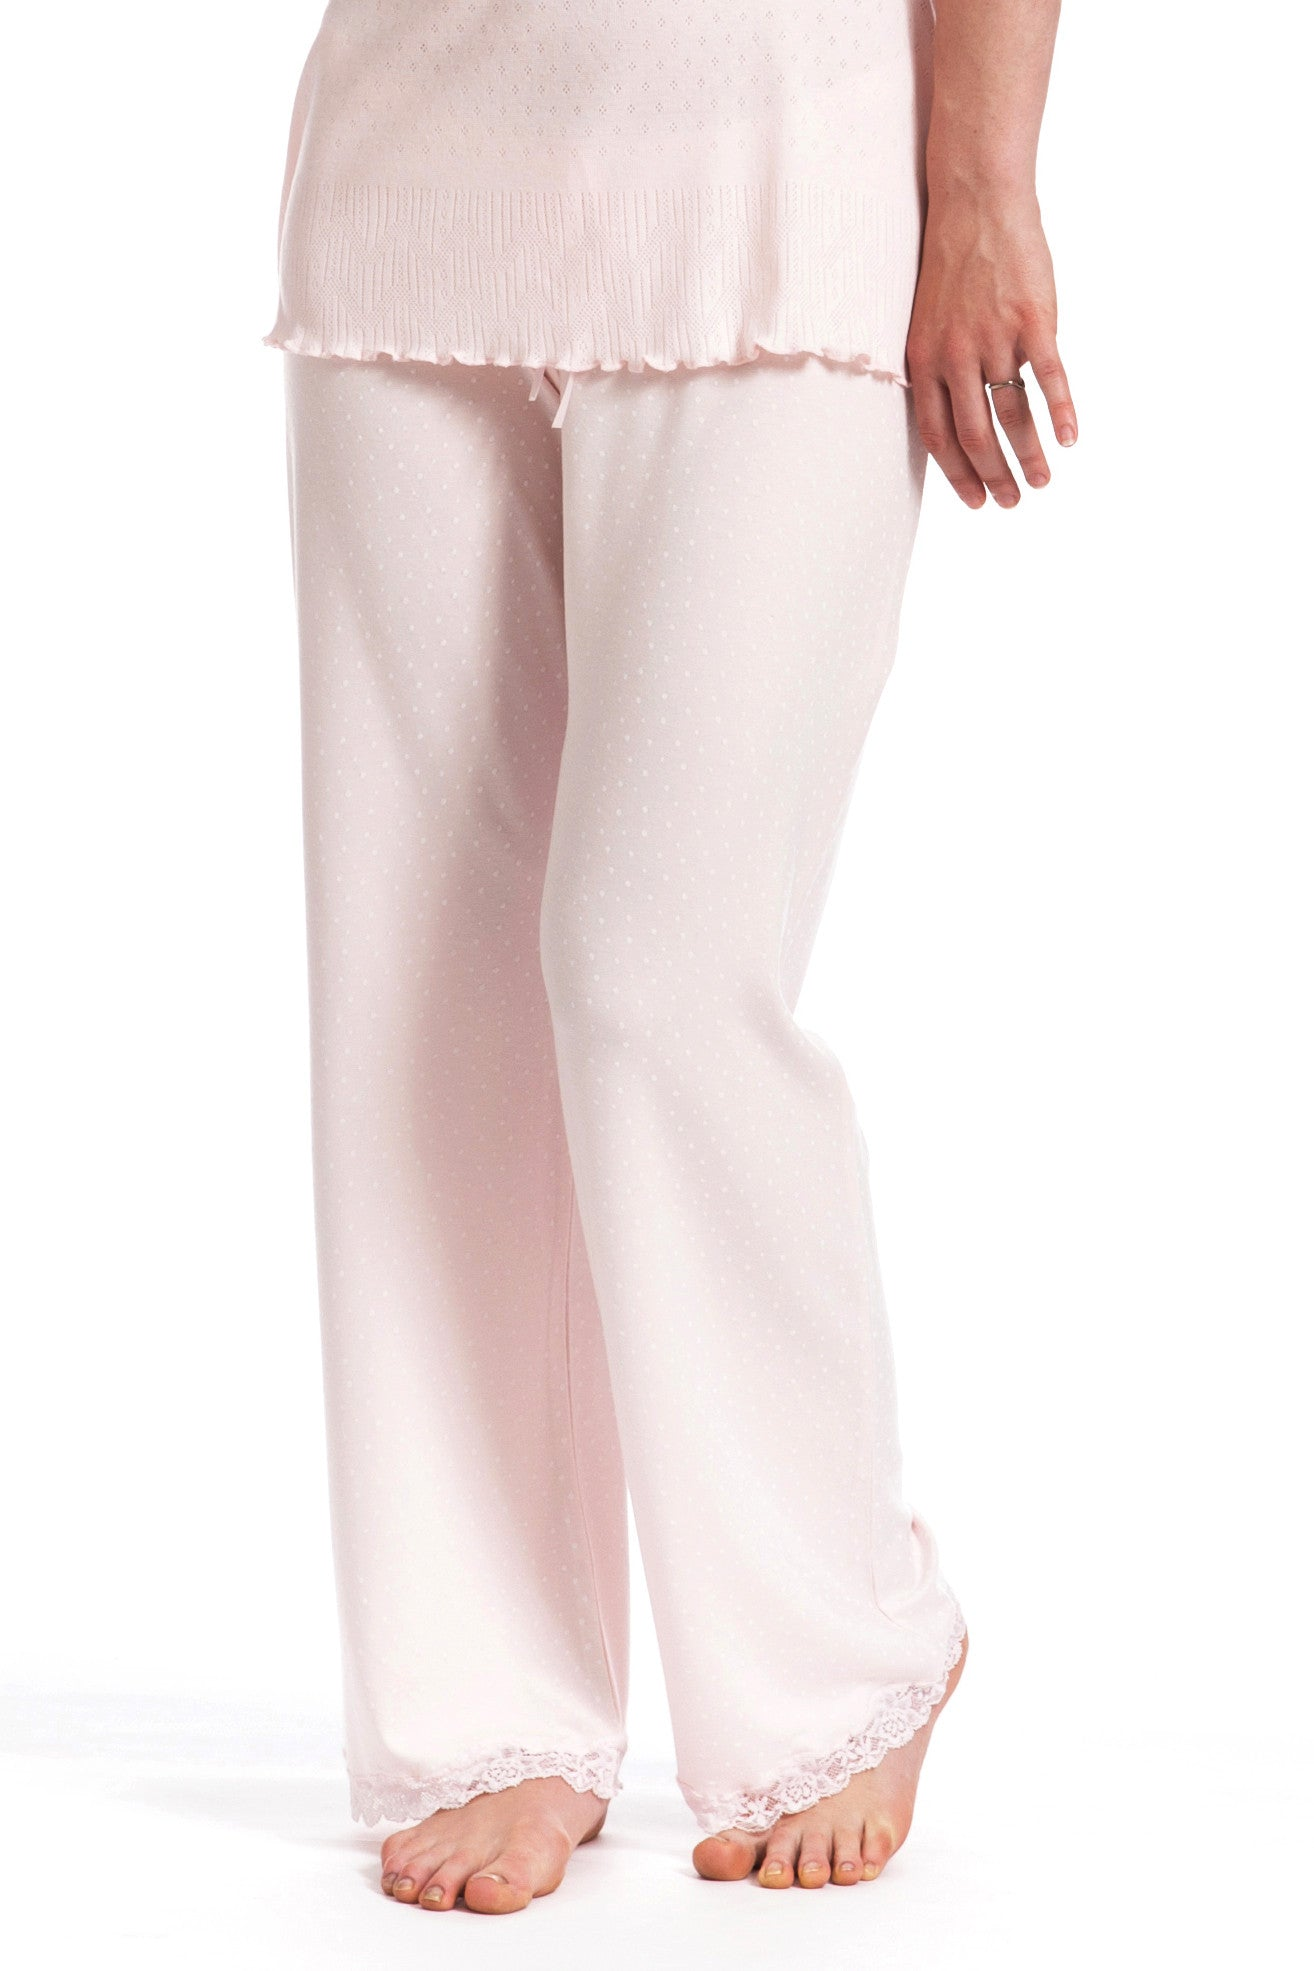 Maternity Pyjama Bottoms Speckled Blush Pink